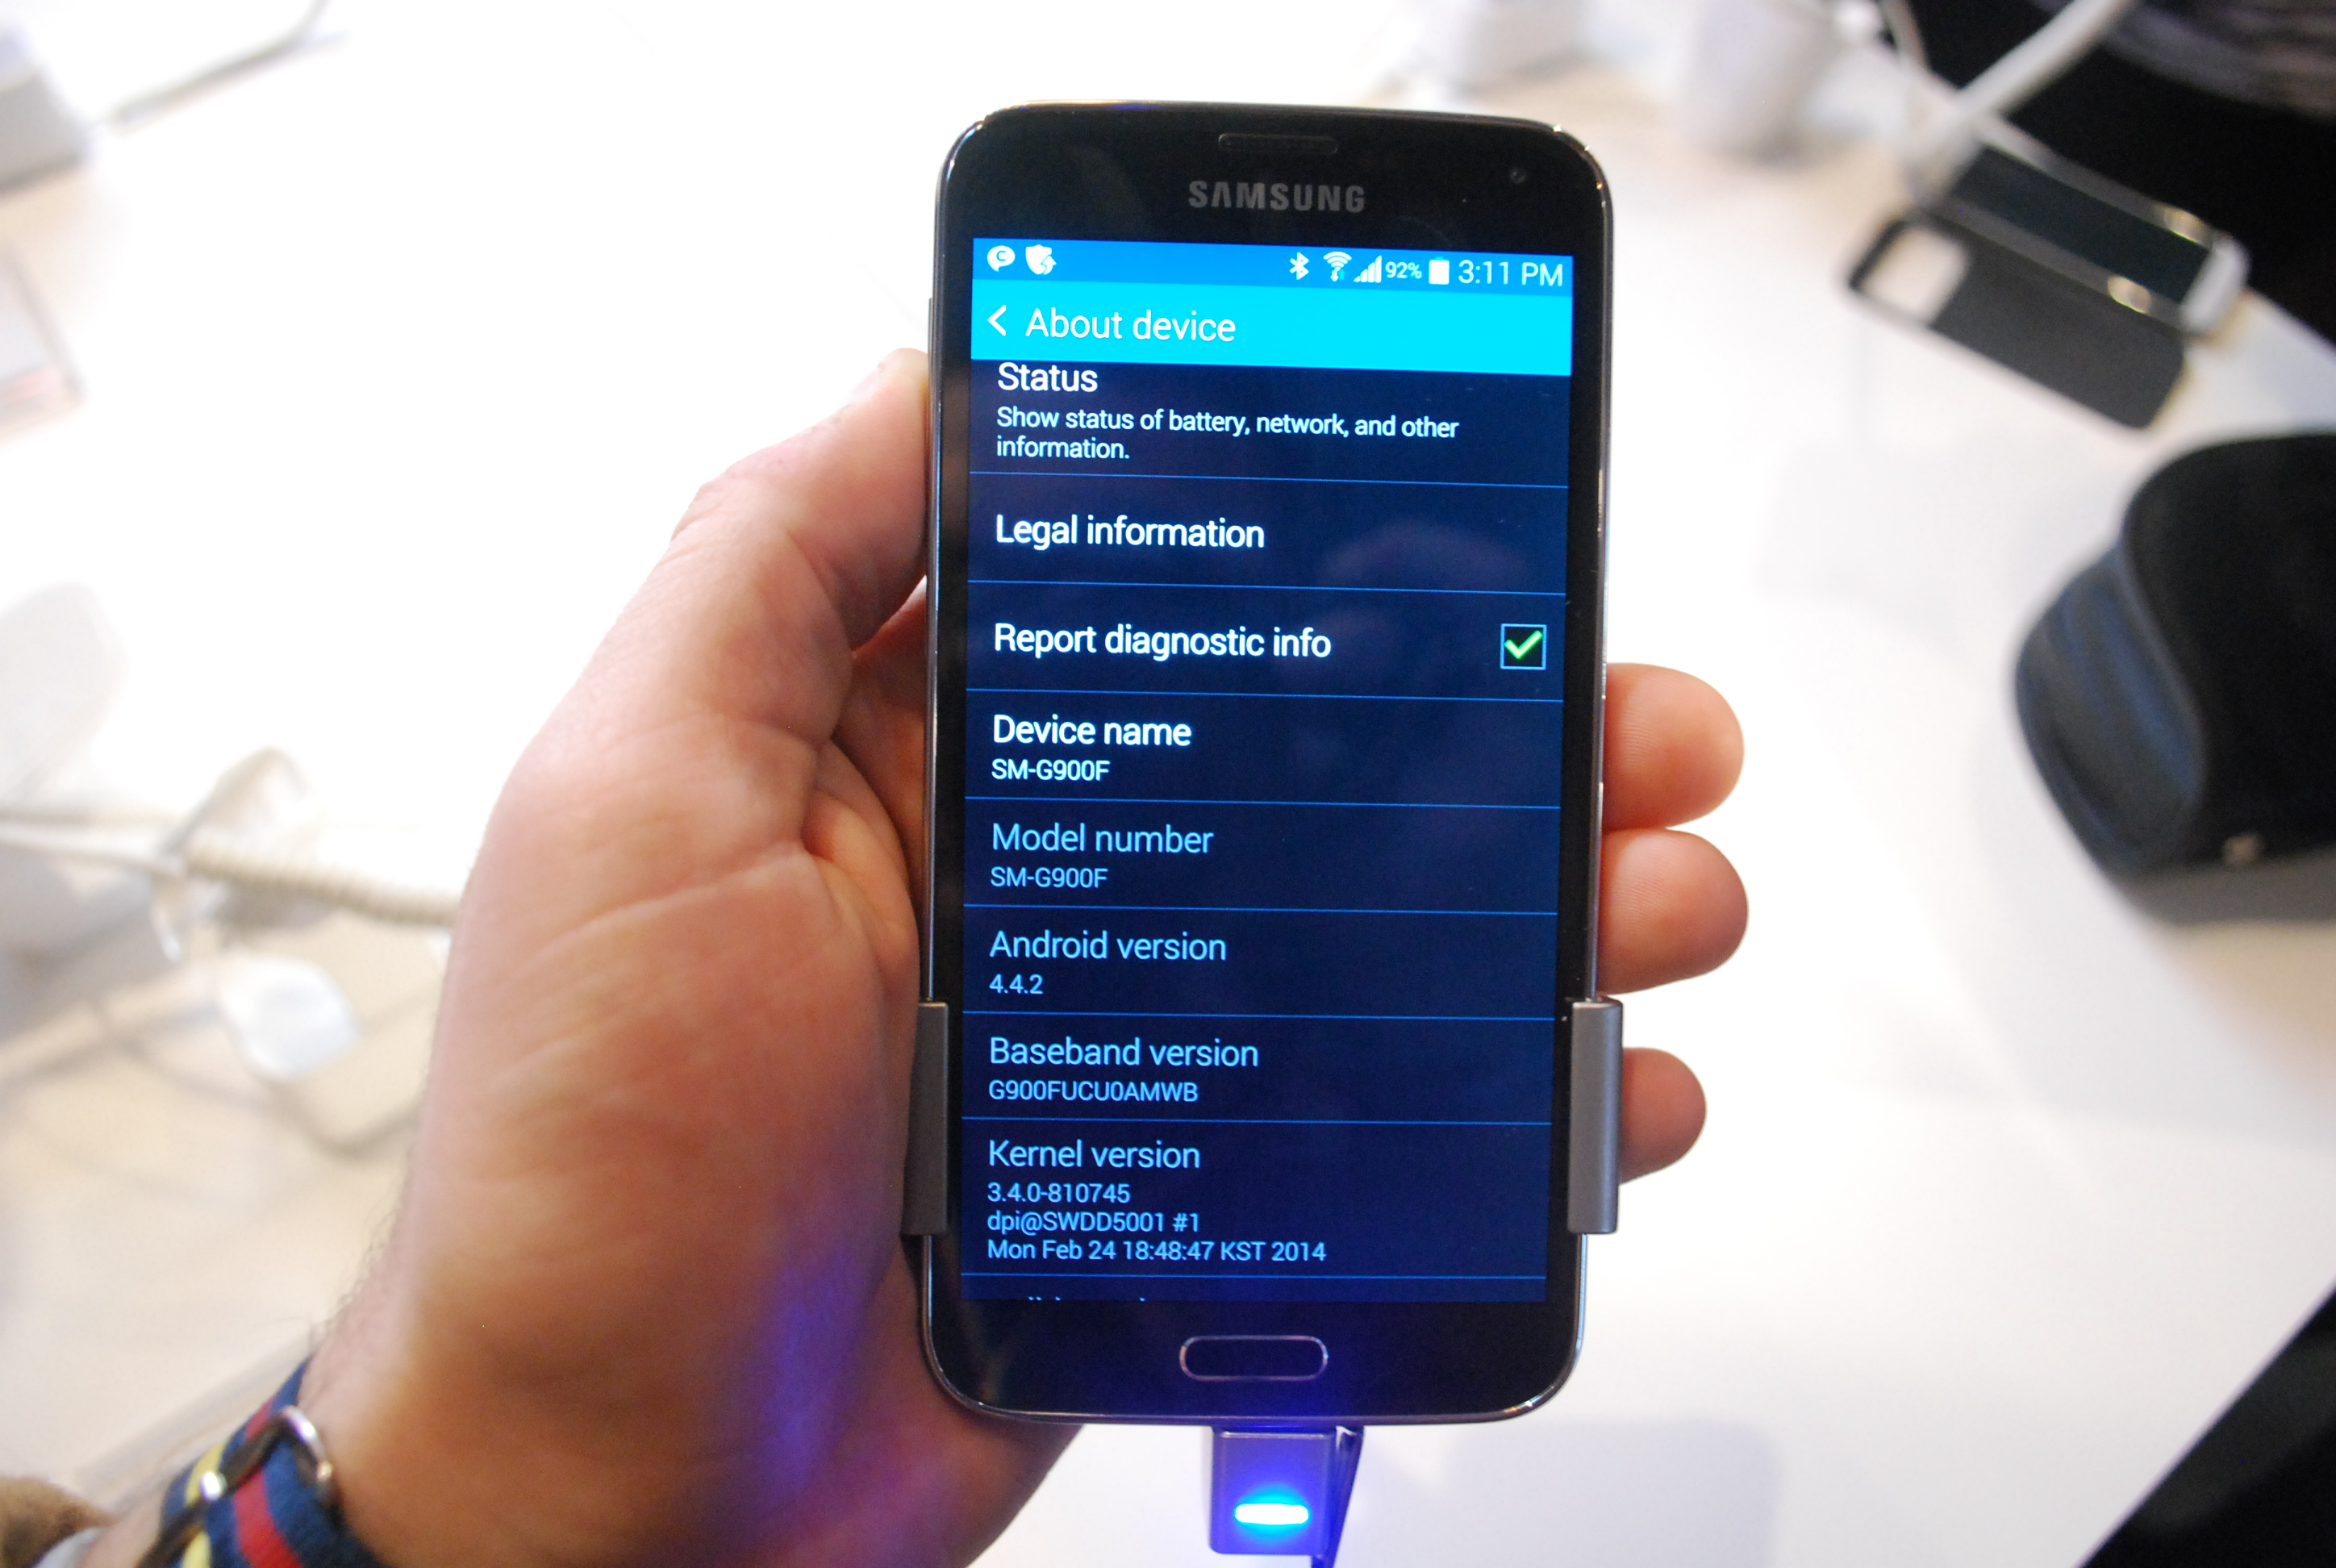 Galaxy S5 Android